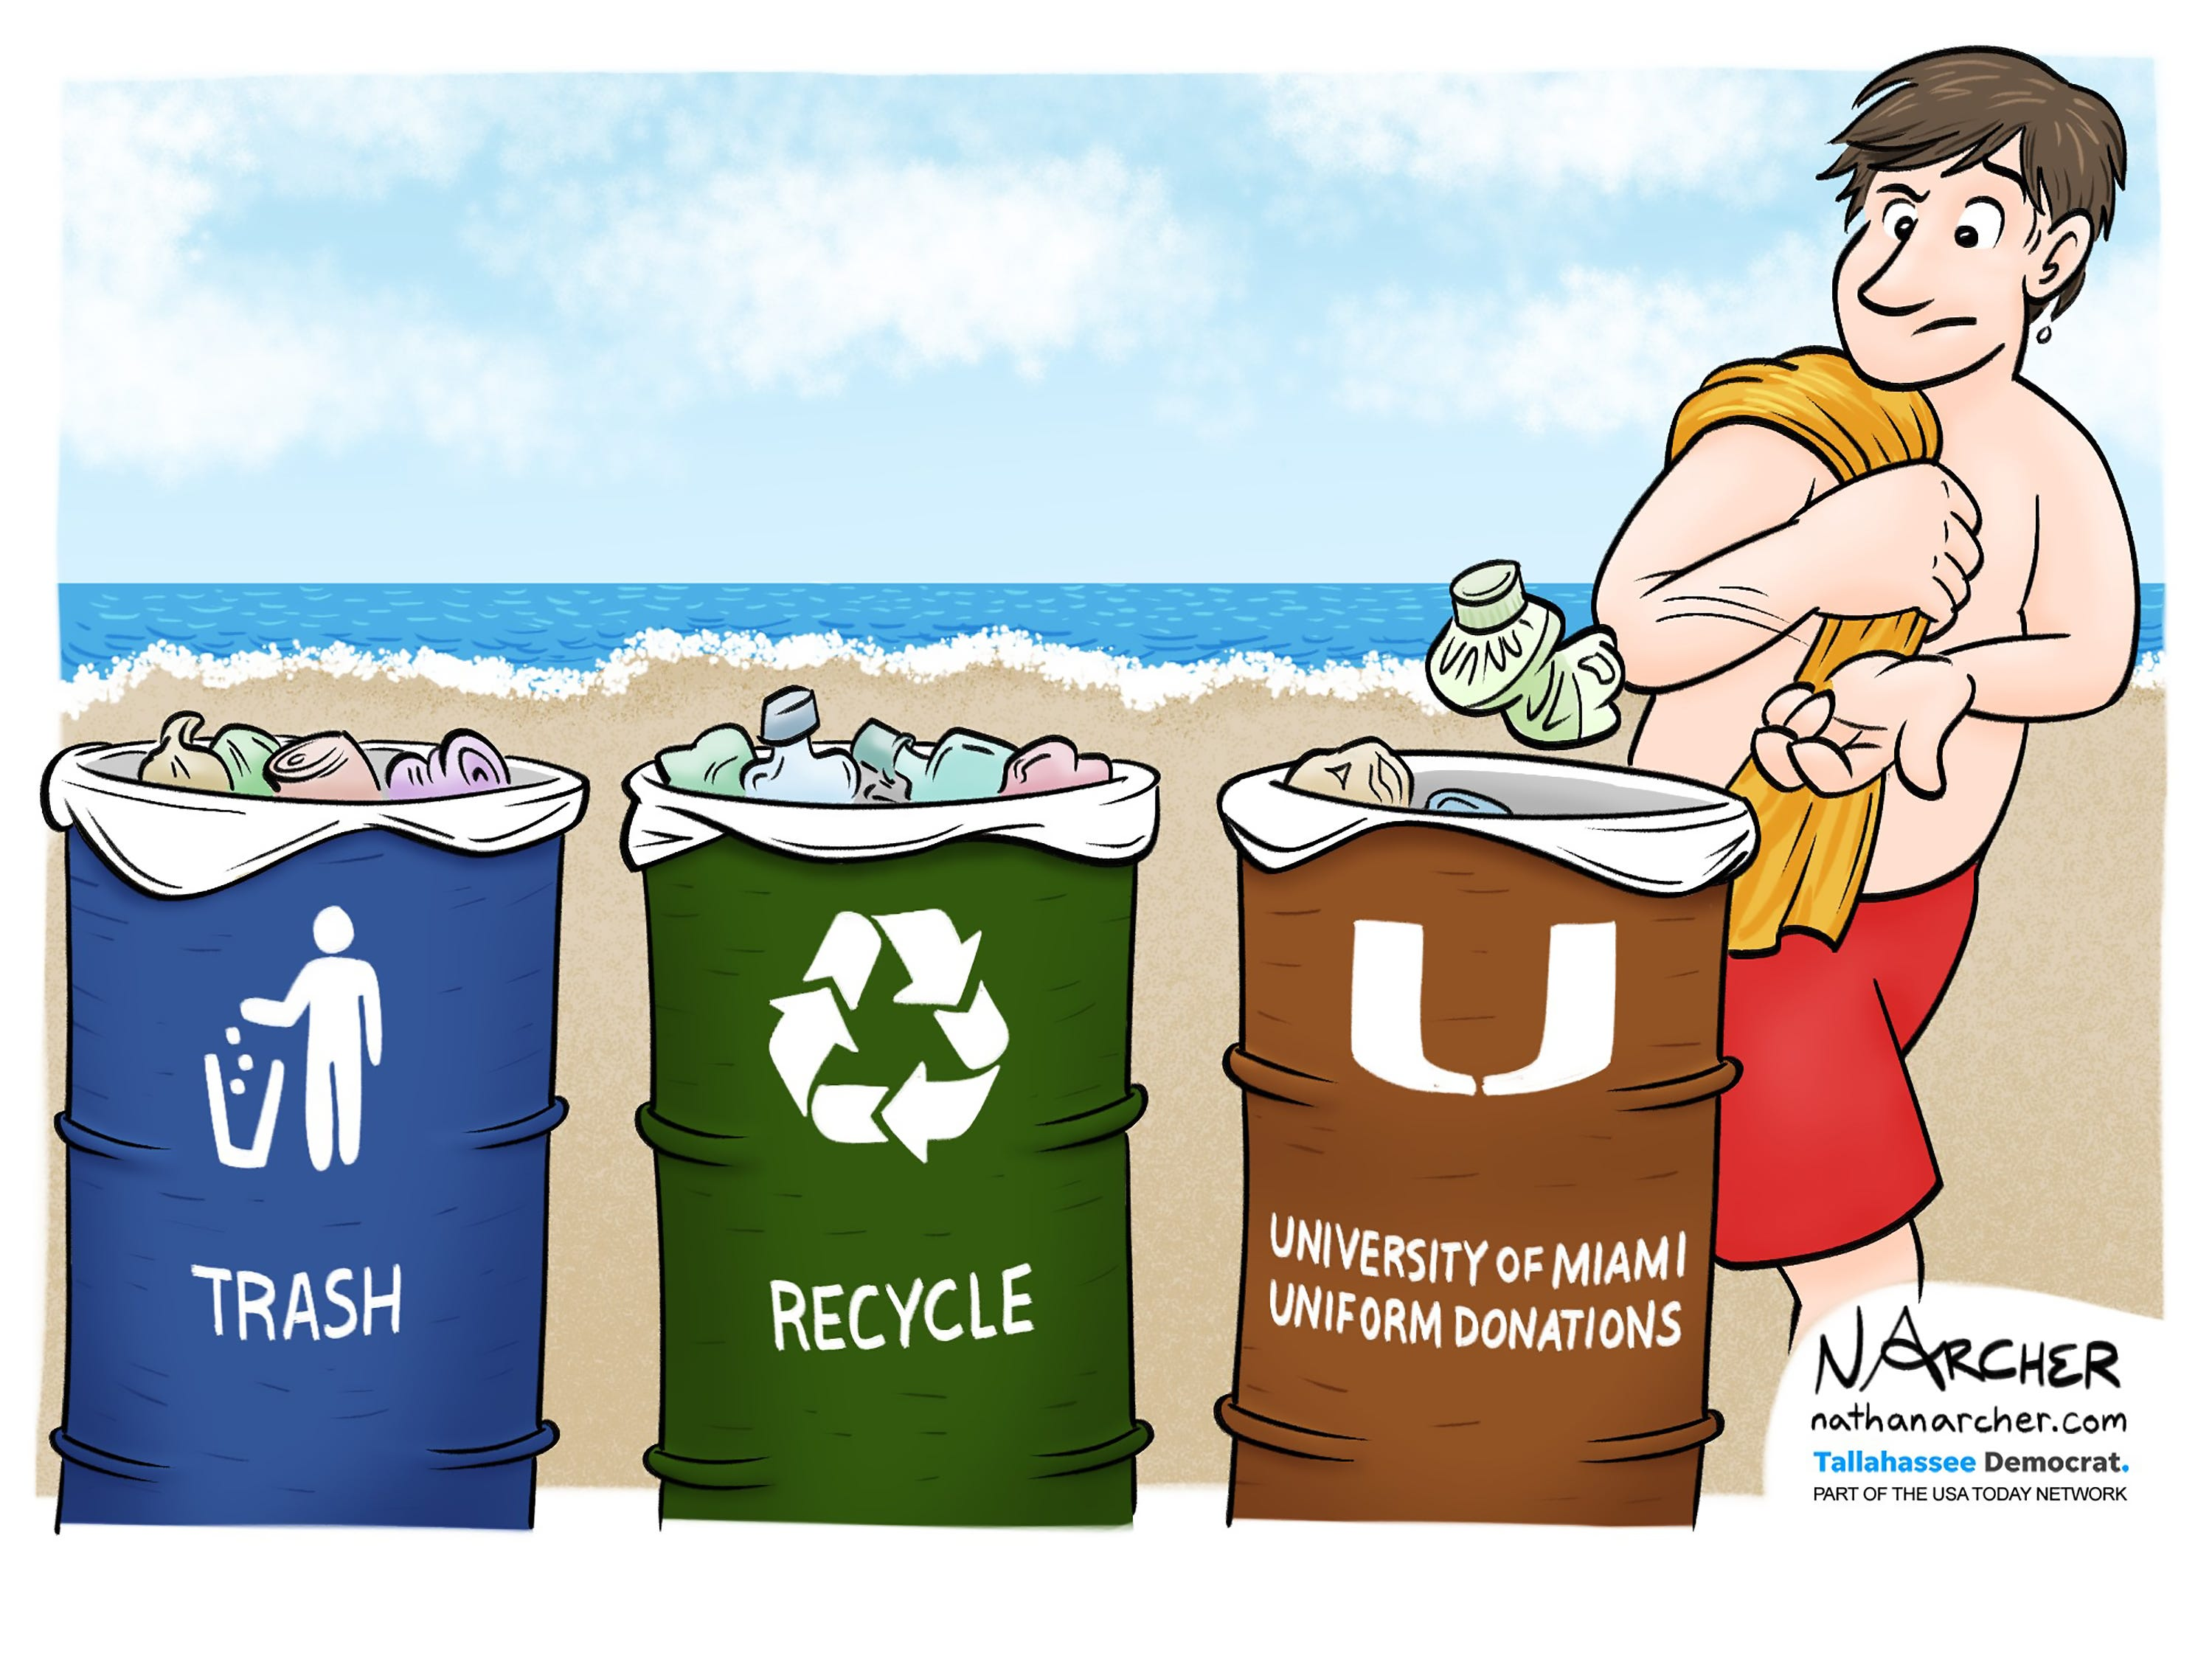 The Miami Hurricanes have pledged to wear uniforms made recycled waste from the ocean at their season opener Sept. 2, 2018. The cartoonist's homepage, tallahassee.com/opinion